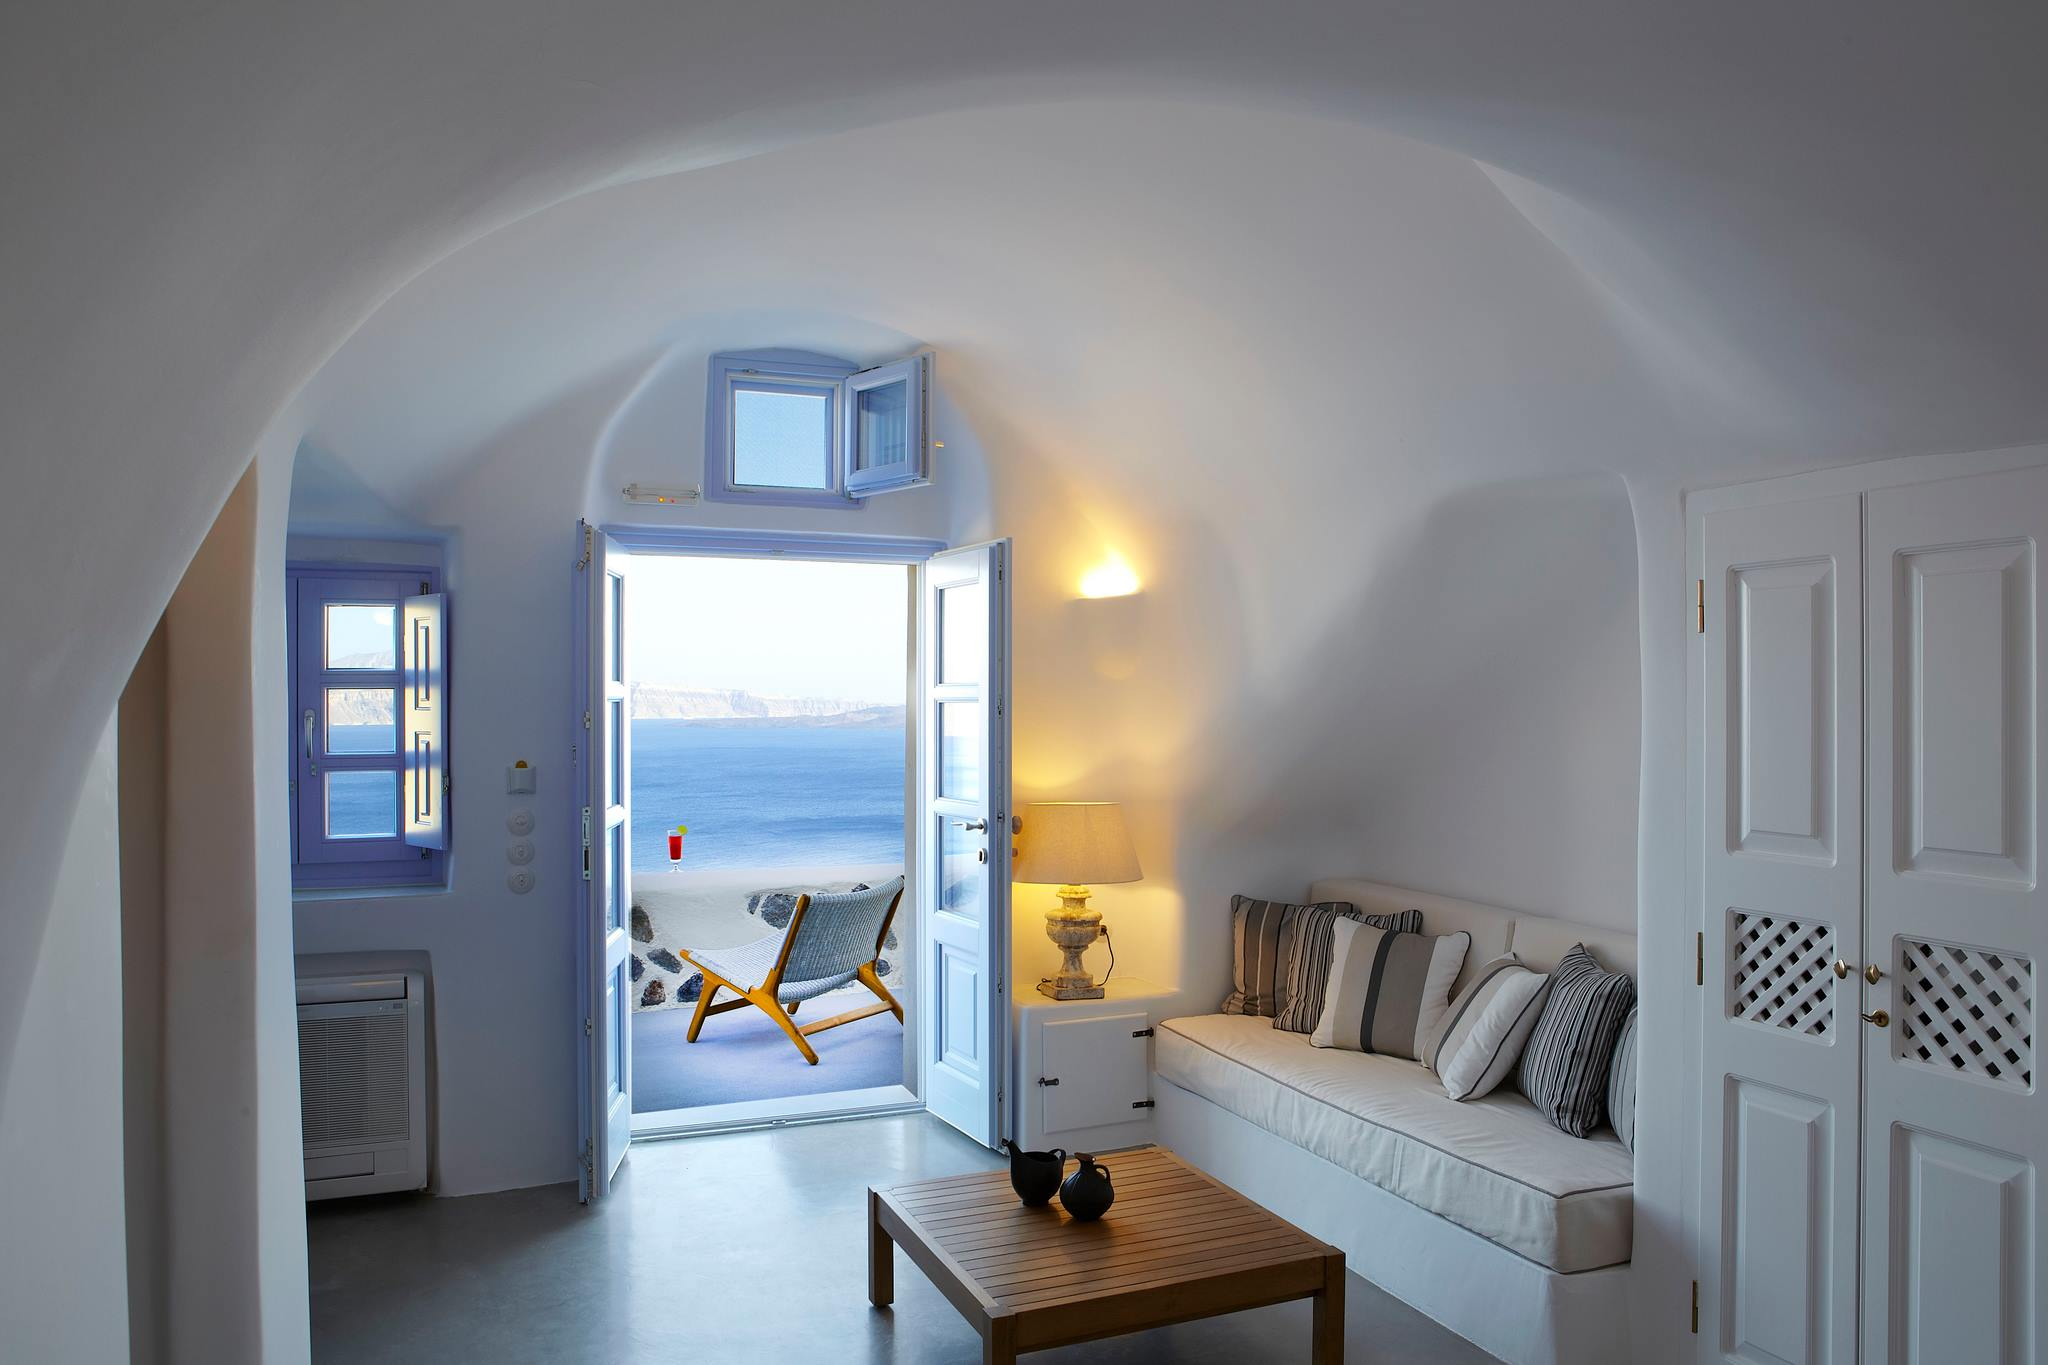 Luxury hotels Oia Santorini accommodation